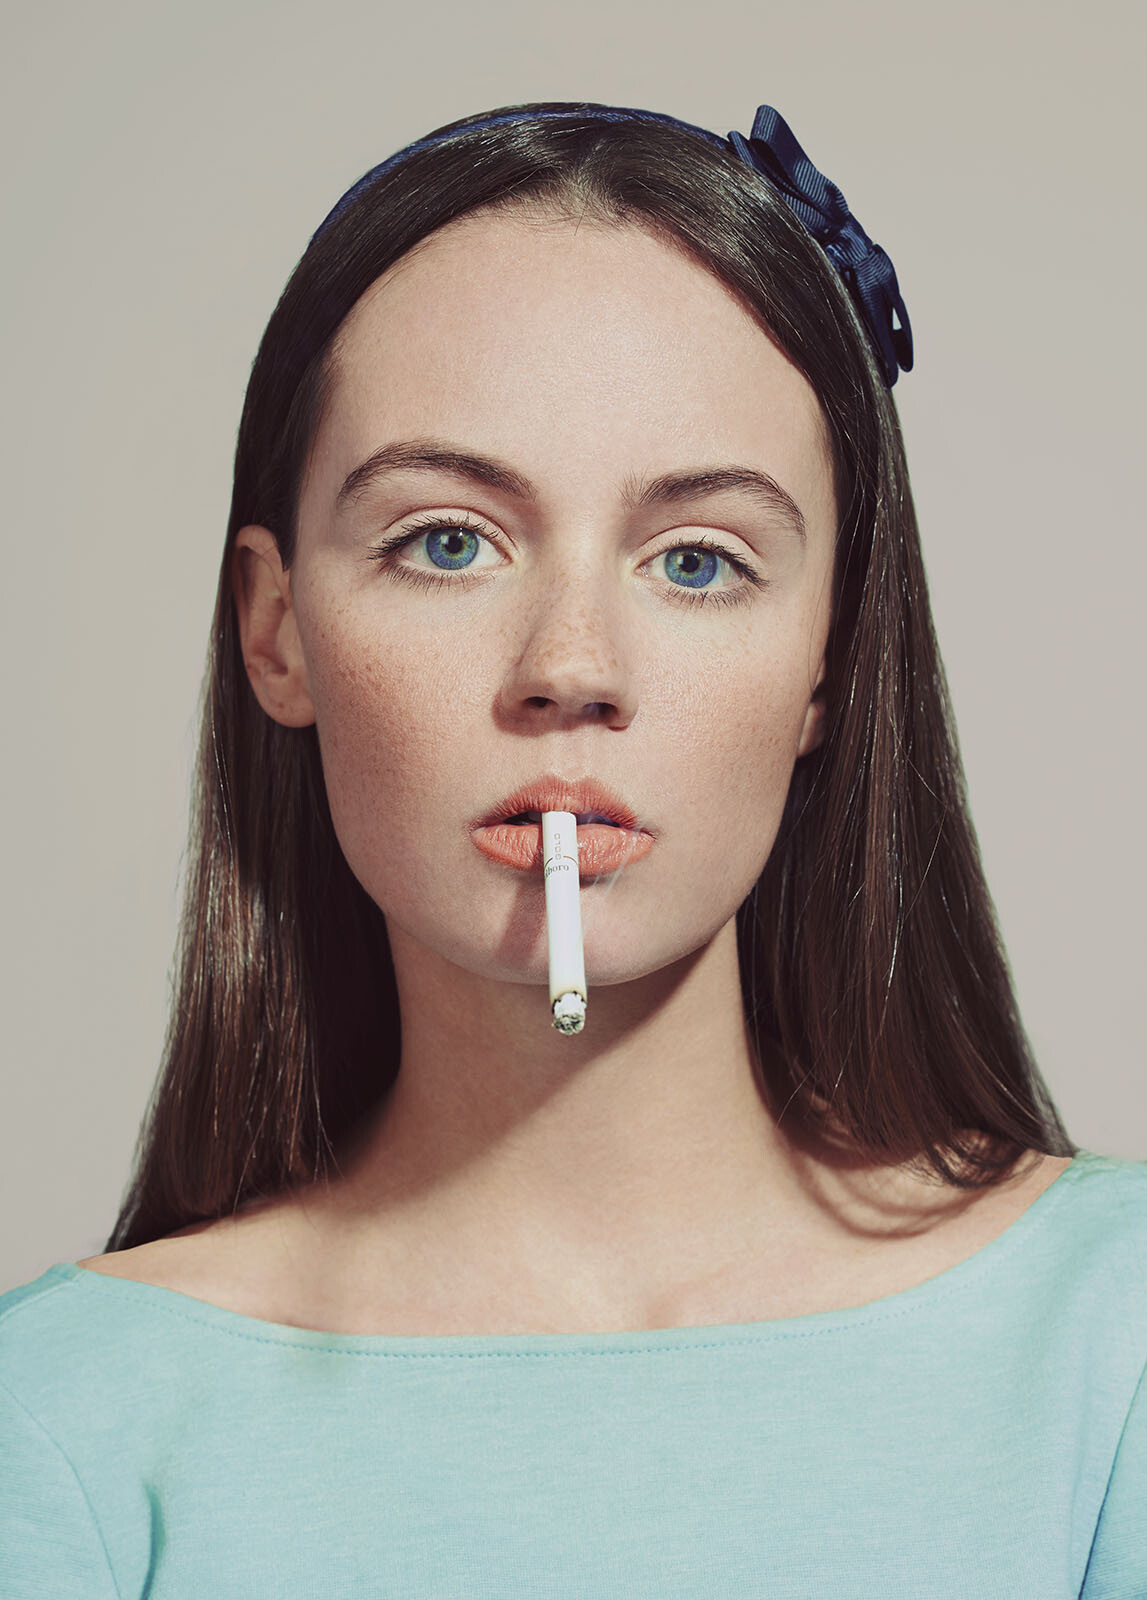 Indiana and the cigarette by Emmanuelle Descraques